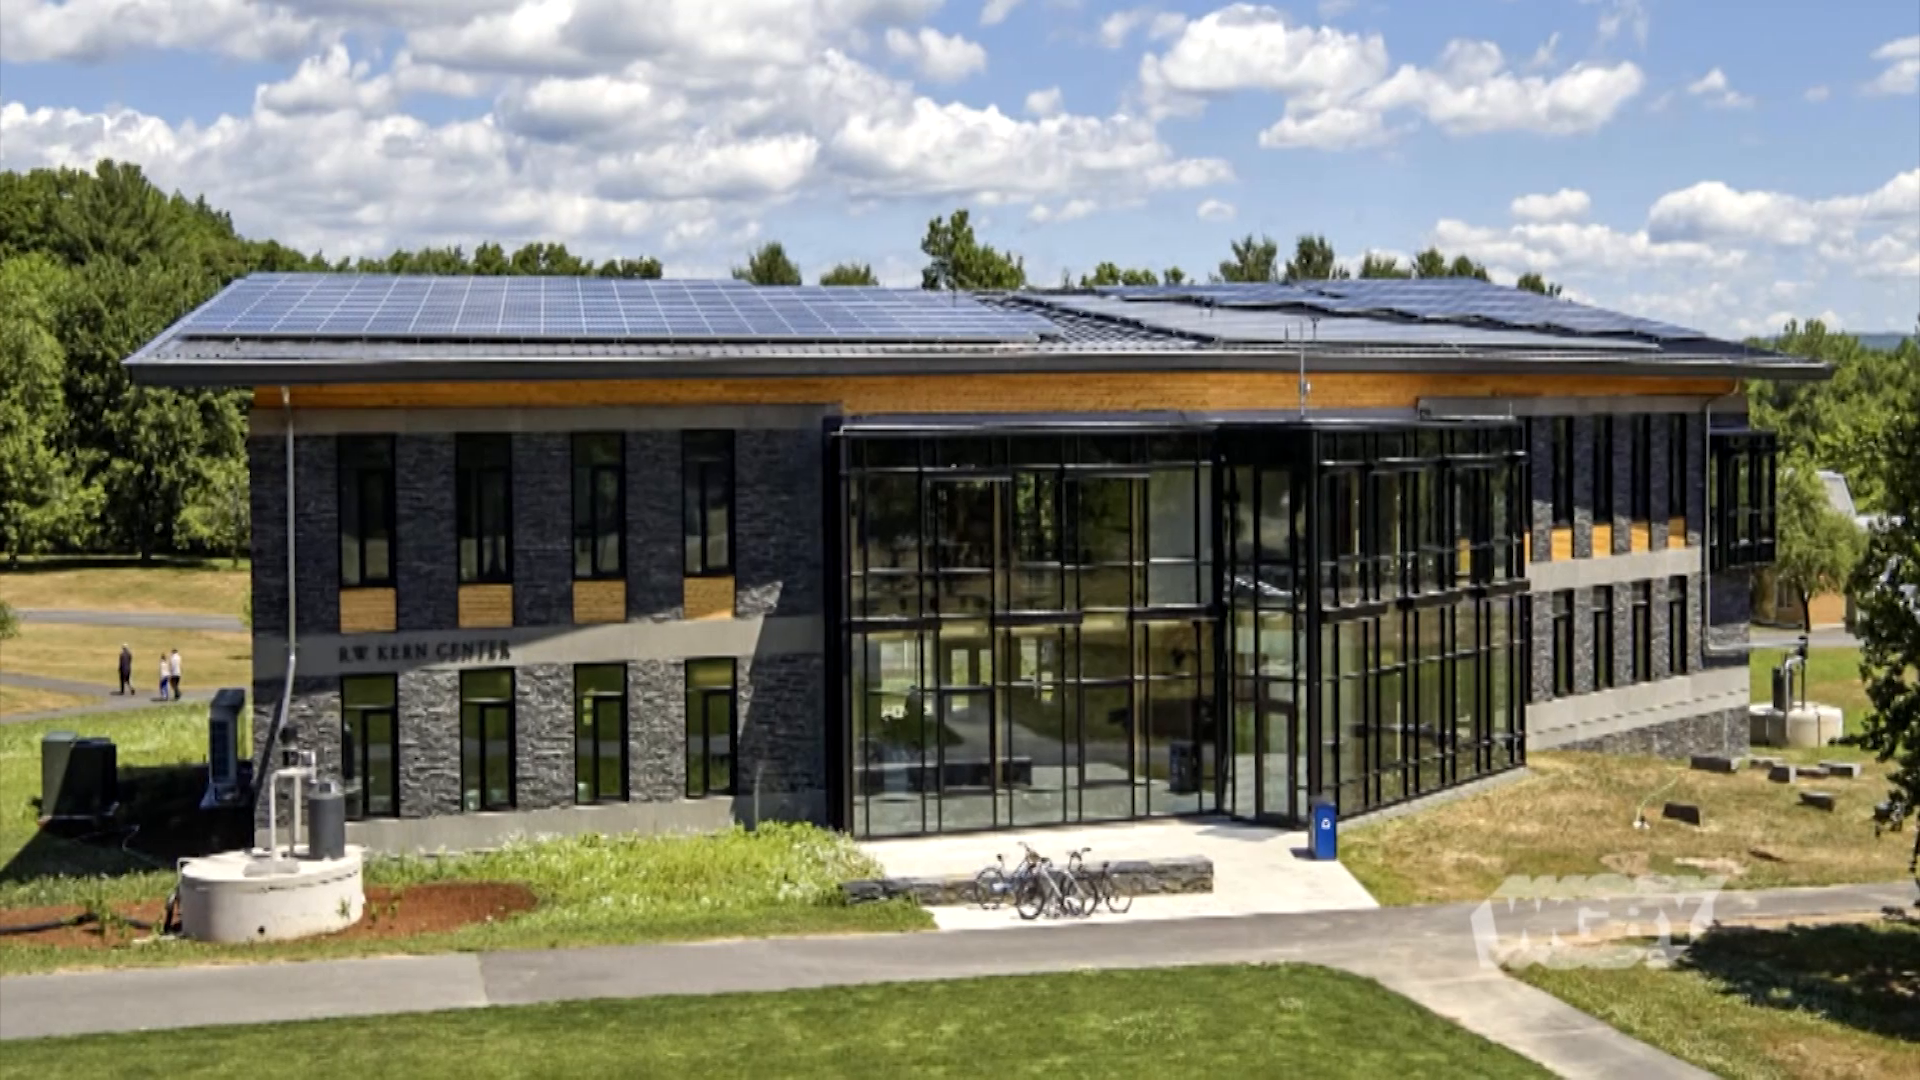 WLearn about the net-zero water system at Hampshire College's RW Kern Center, % and why the Mass. Department of Public Health has concerns about the system.